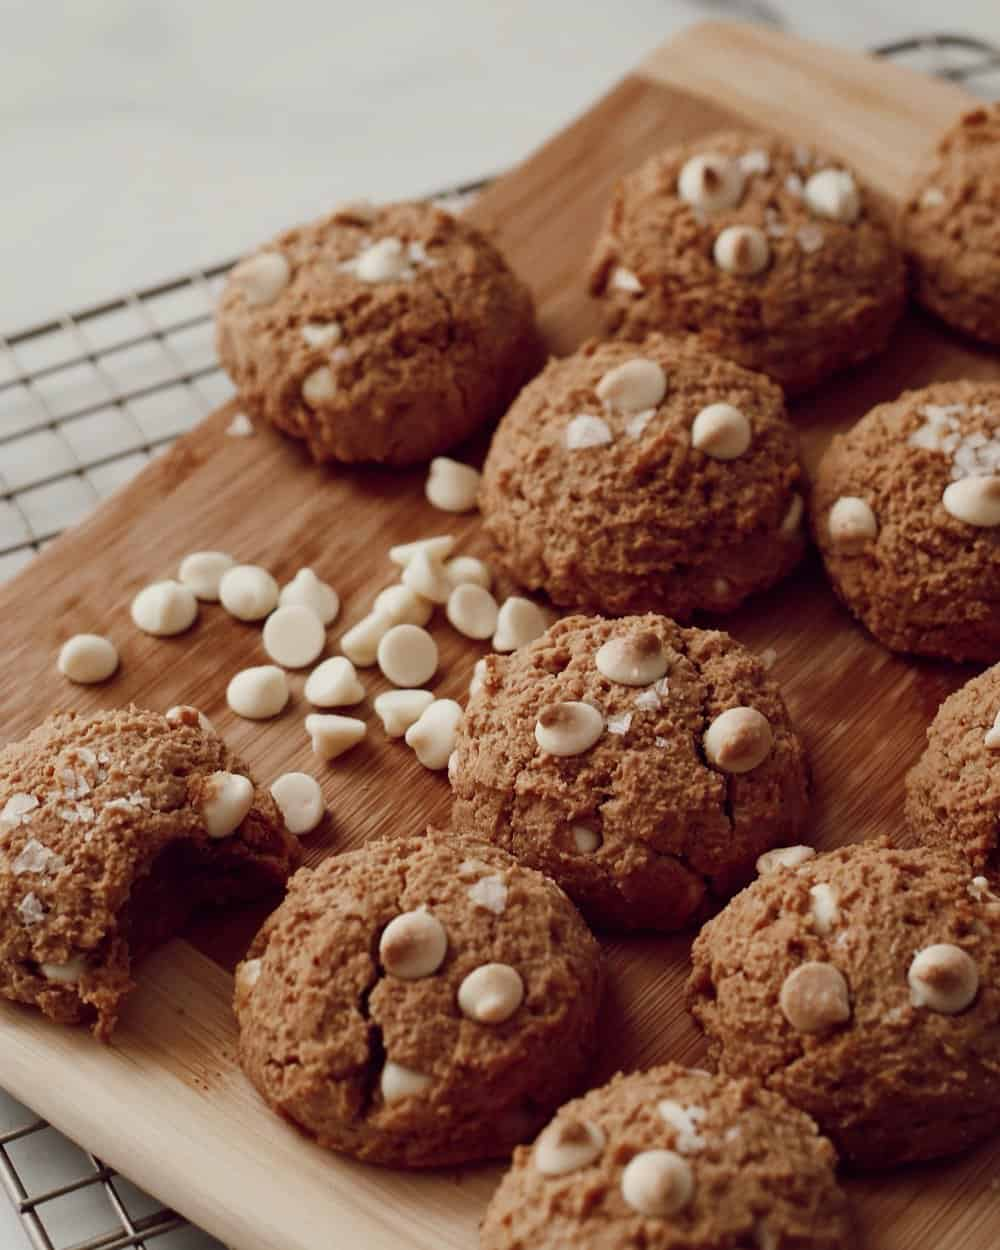 PEANUT BUTTER WHITE CHOCOLATE CHIP COOKIES - INGREDIENTS1 cup almond flour 3/4 cup creamy peanut butter 1/3 cup maple syrup1 tsp vanilla extract 1/2 tsp sea salt3/4 cup white chocolate chips1 egg or flax egg (1 tb ground flax meal + 3 tb water)